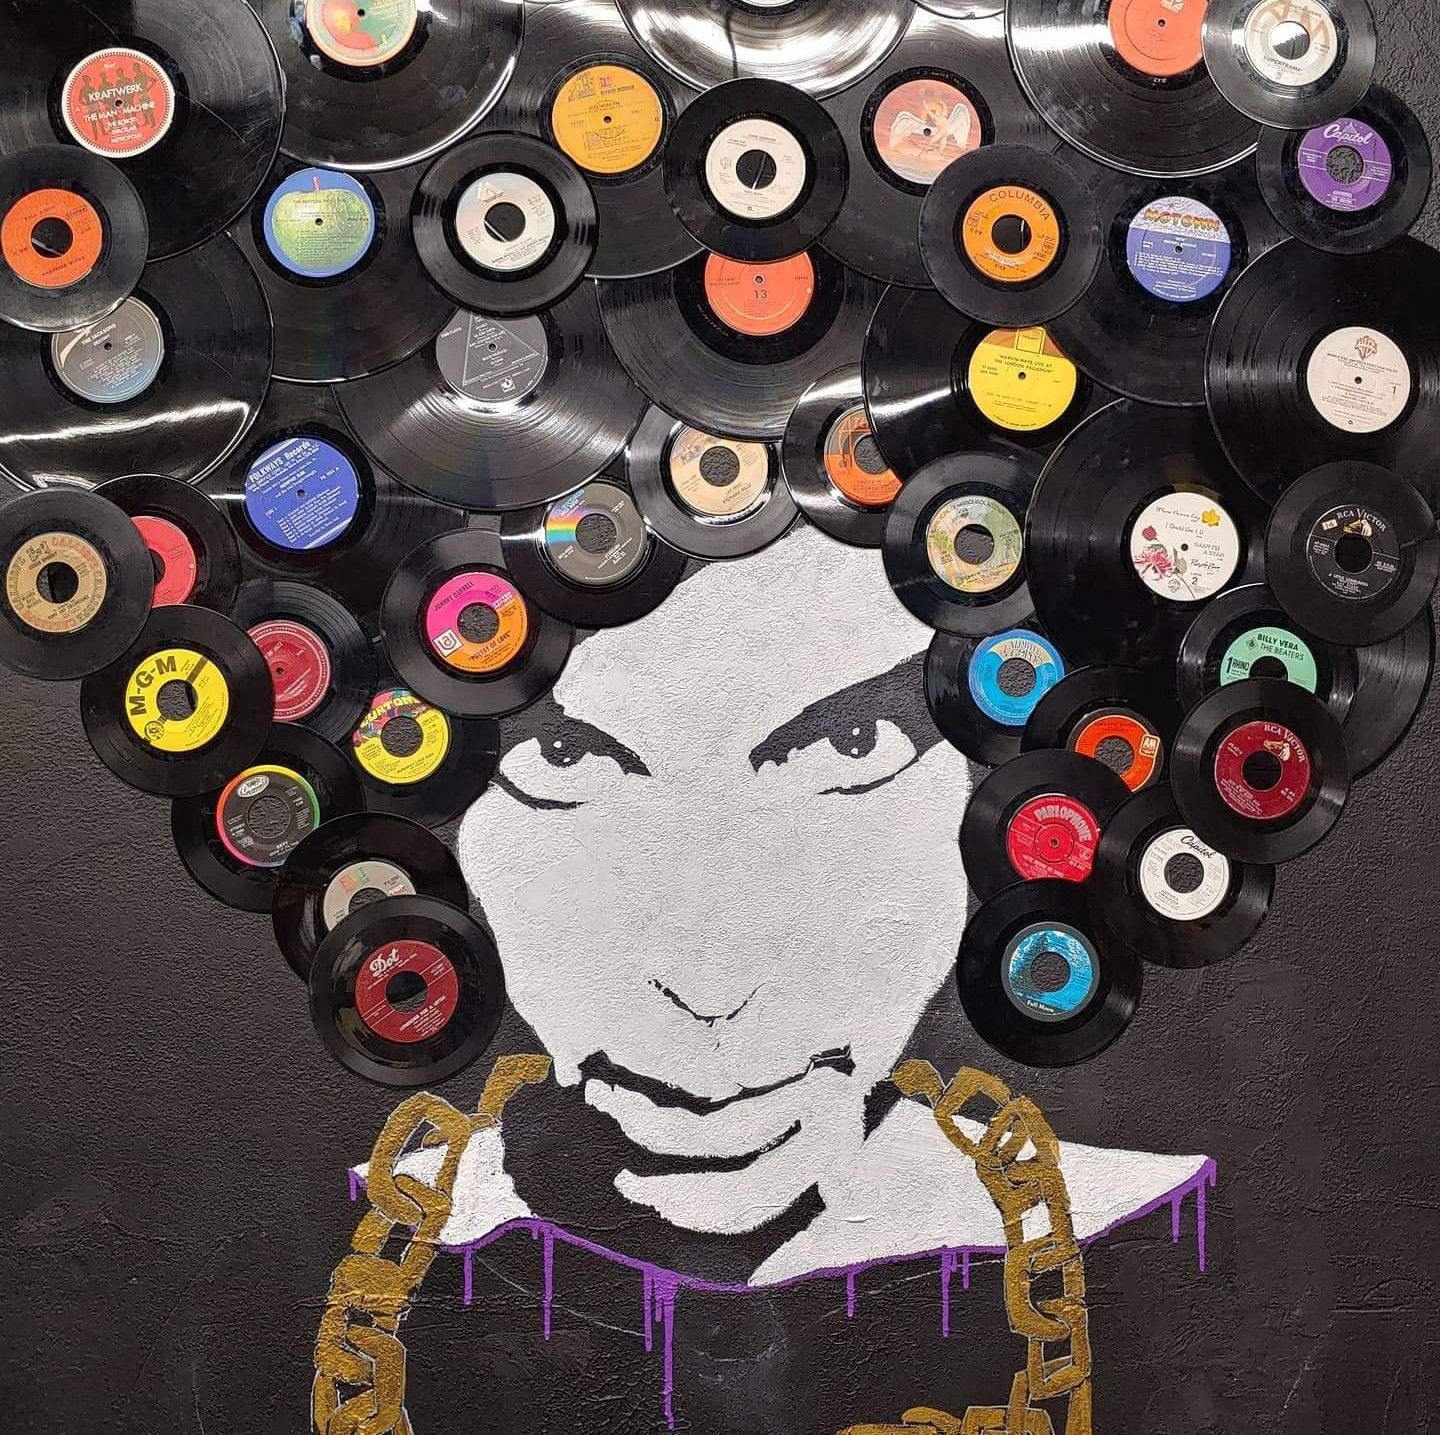 Pin by heather frederick on prince themed artwork in 2020